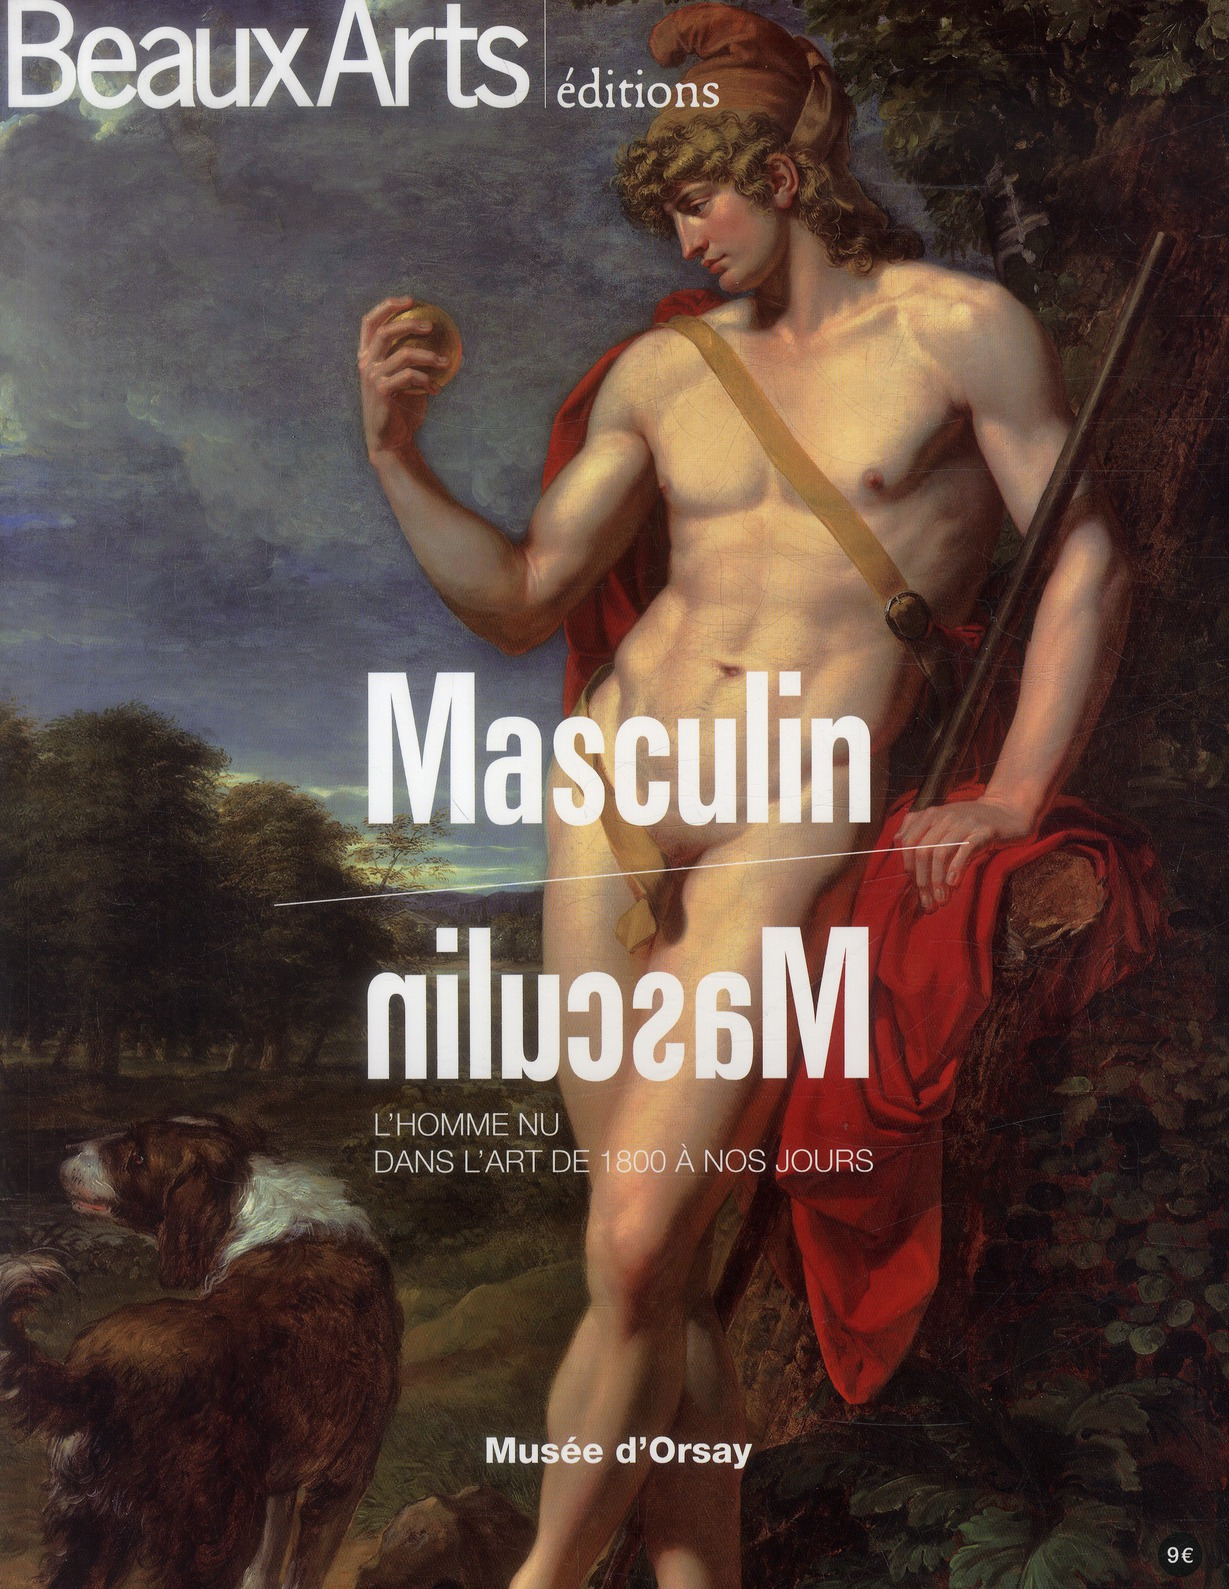 MASCULIN-MASCULIN MUSEE D'ORSAY